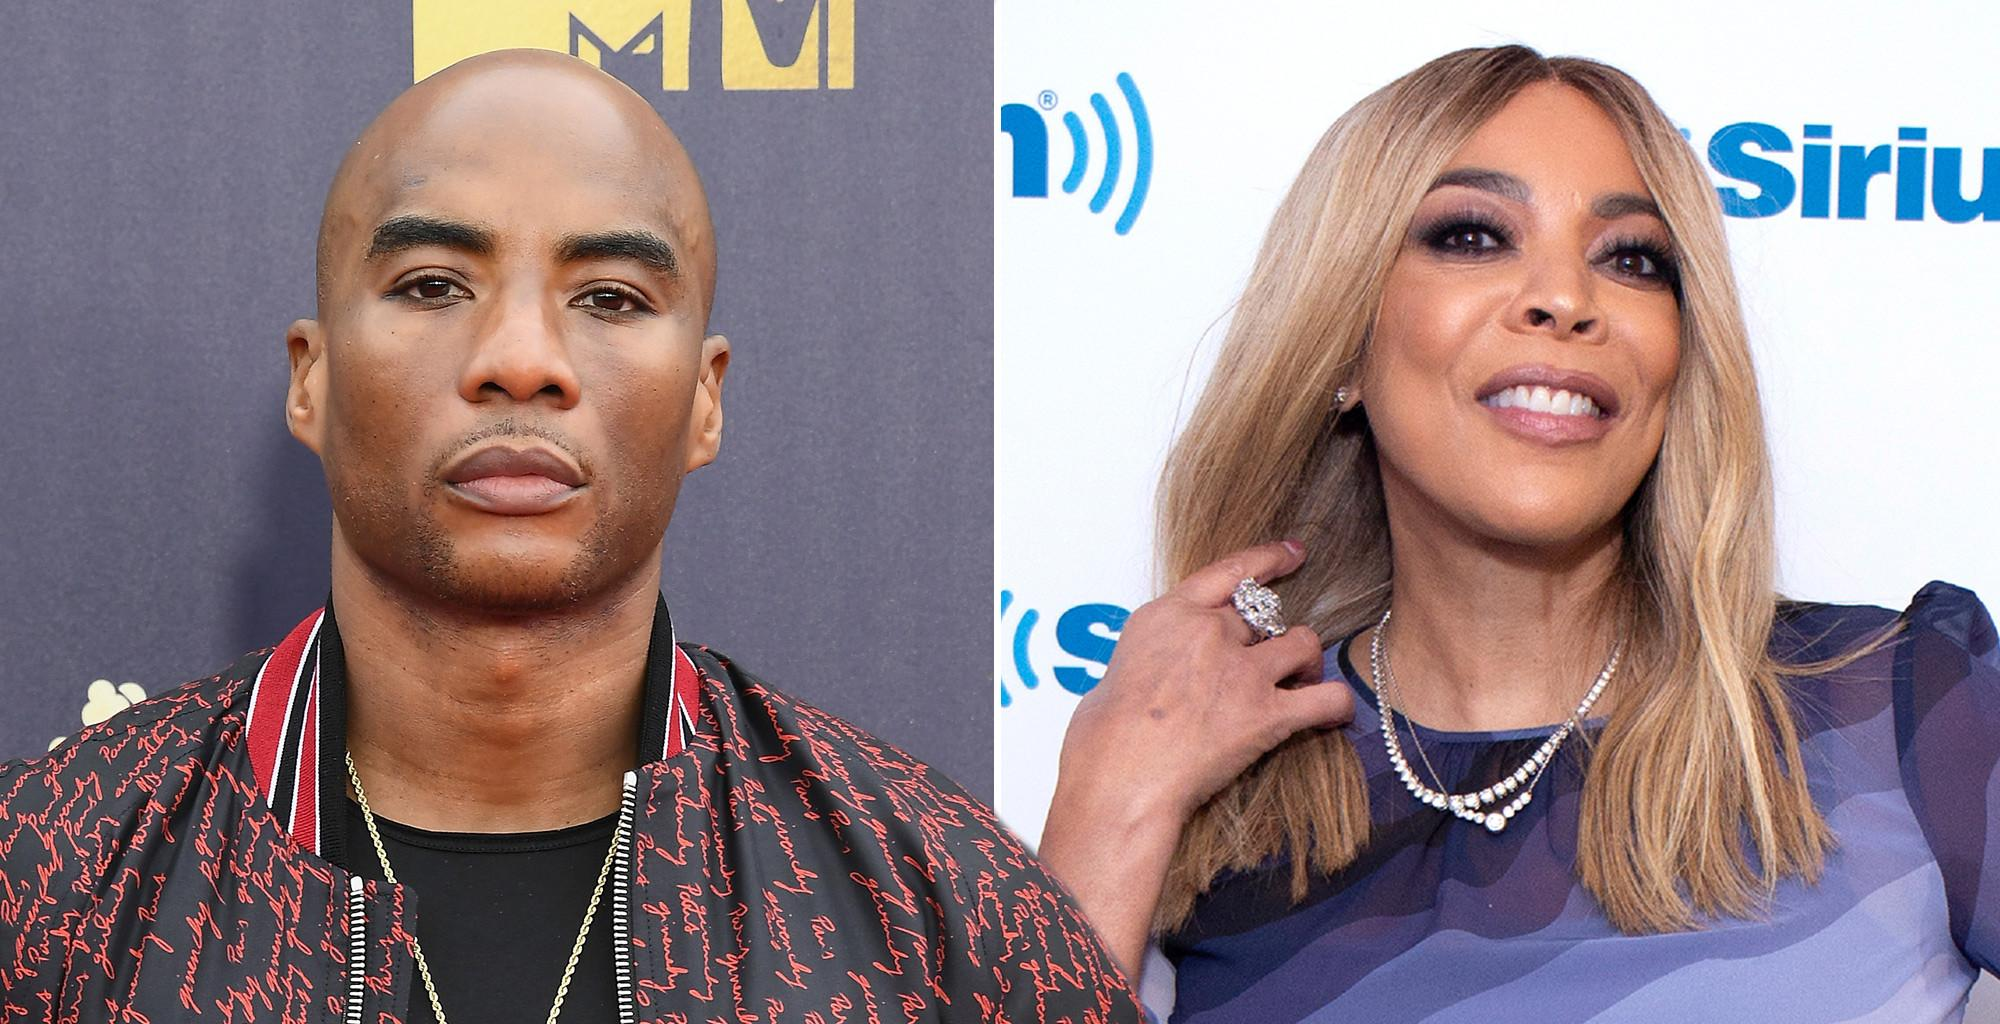 Wendy Williams And Charlamagne Tha God End Their Decade-Long Feud With Sweet Selfie And Message!